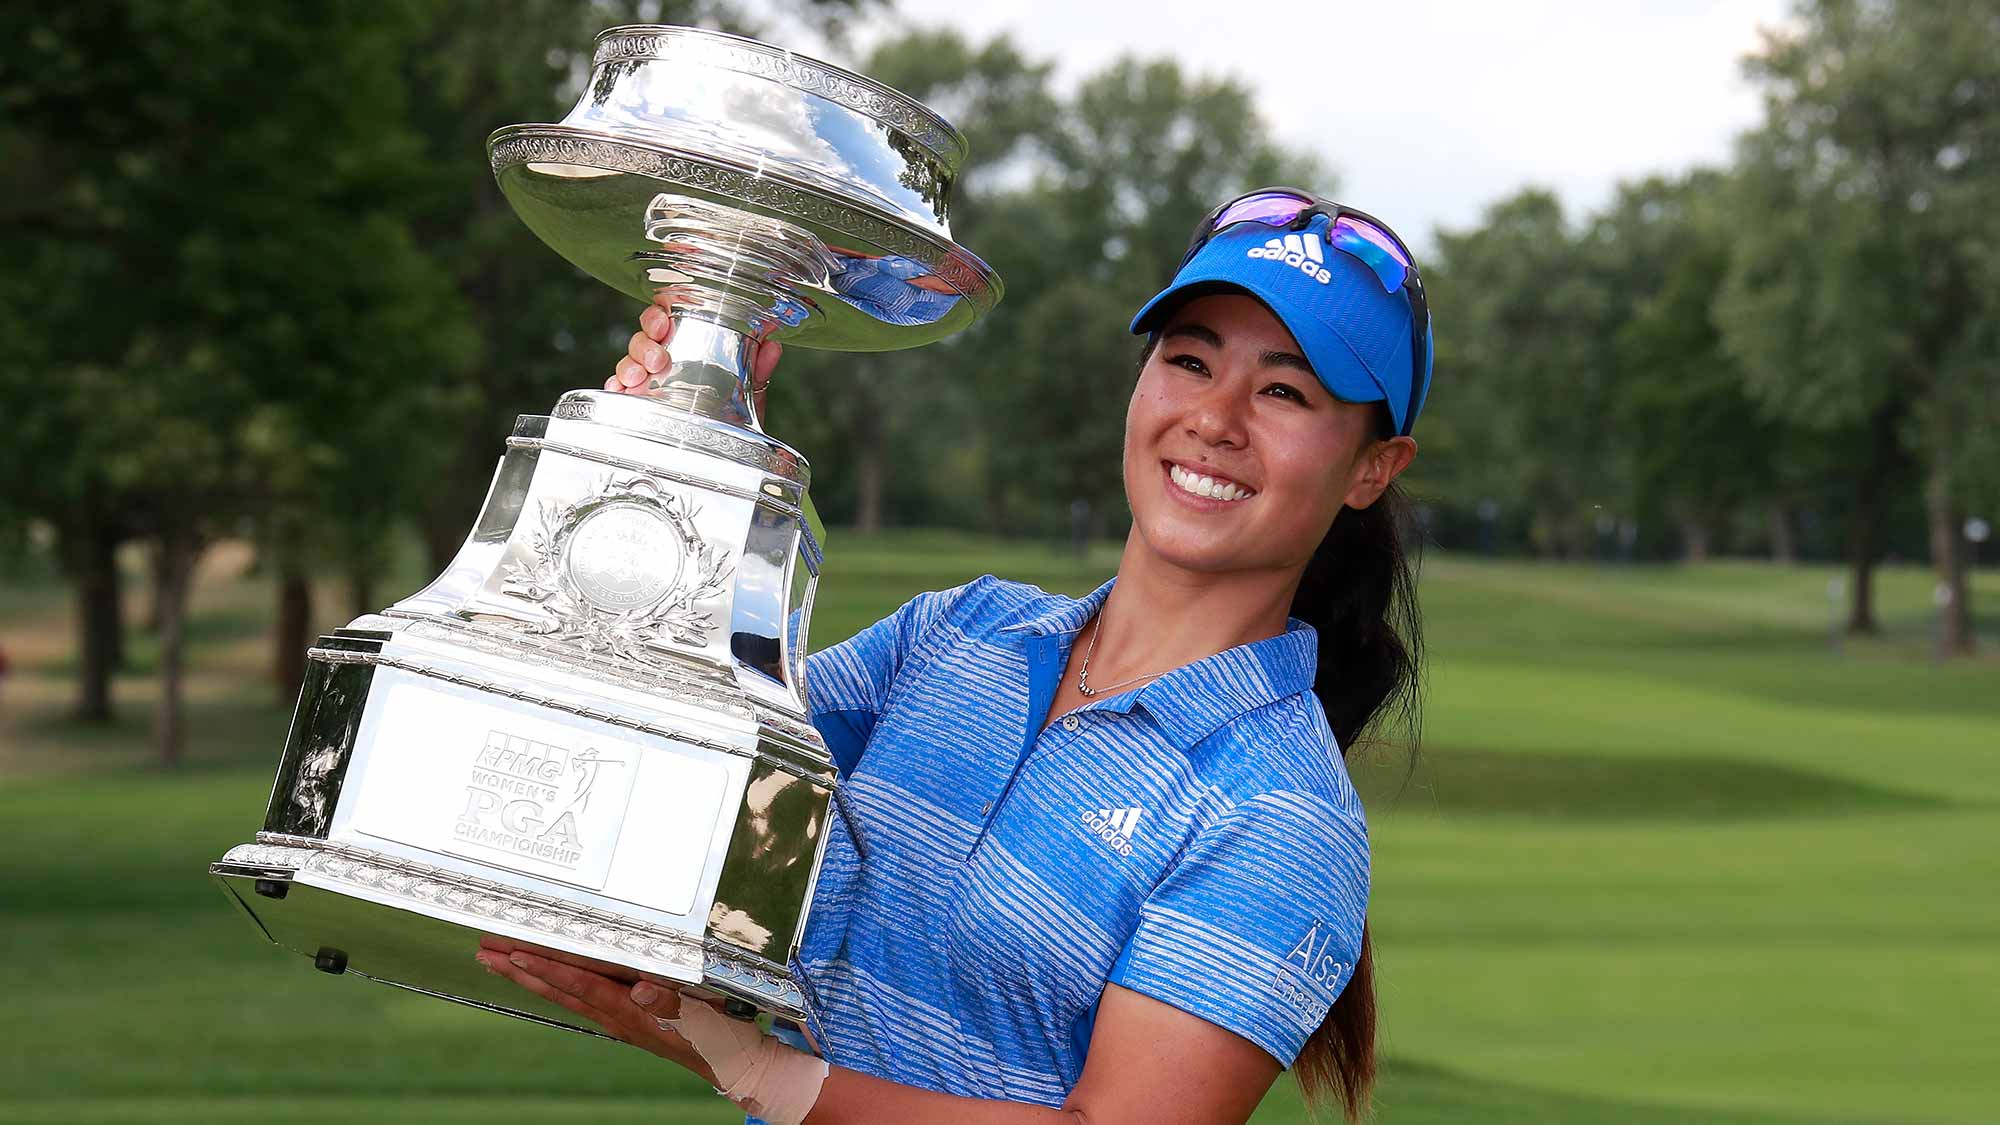 Danielle Kang poses with the championship trophy after winning the 2017 KPMG PGA Championship at Olympia Fields Country Club